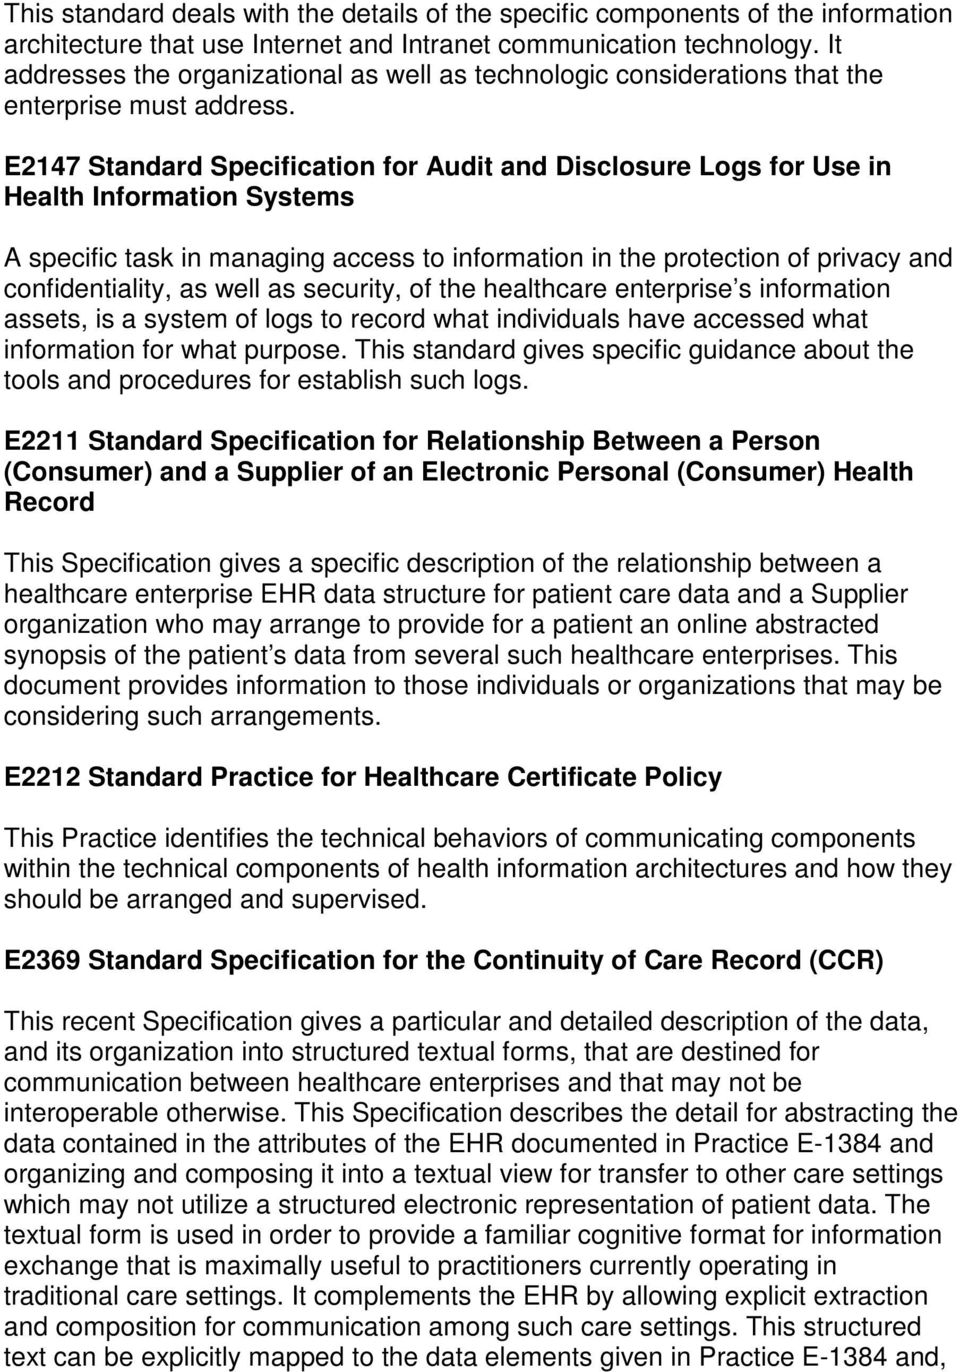 E2147 Standard Specification for Audit and Disclosure Logs for Use in Health Information Systems A specific task in managing access to information in the protection of privacy and confidentiality, as